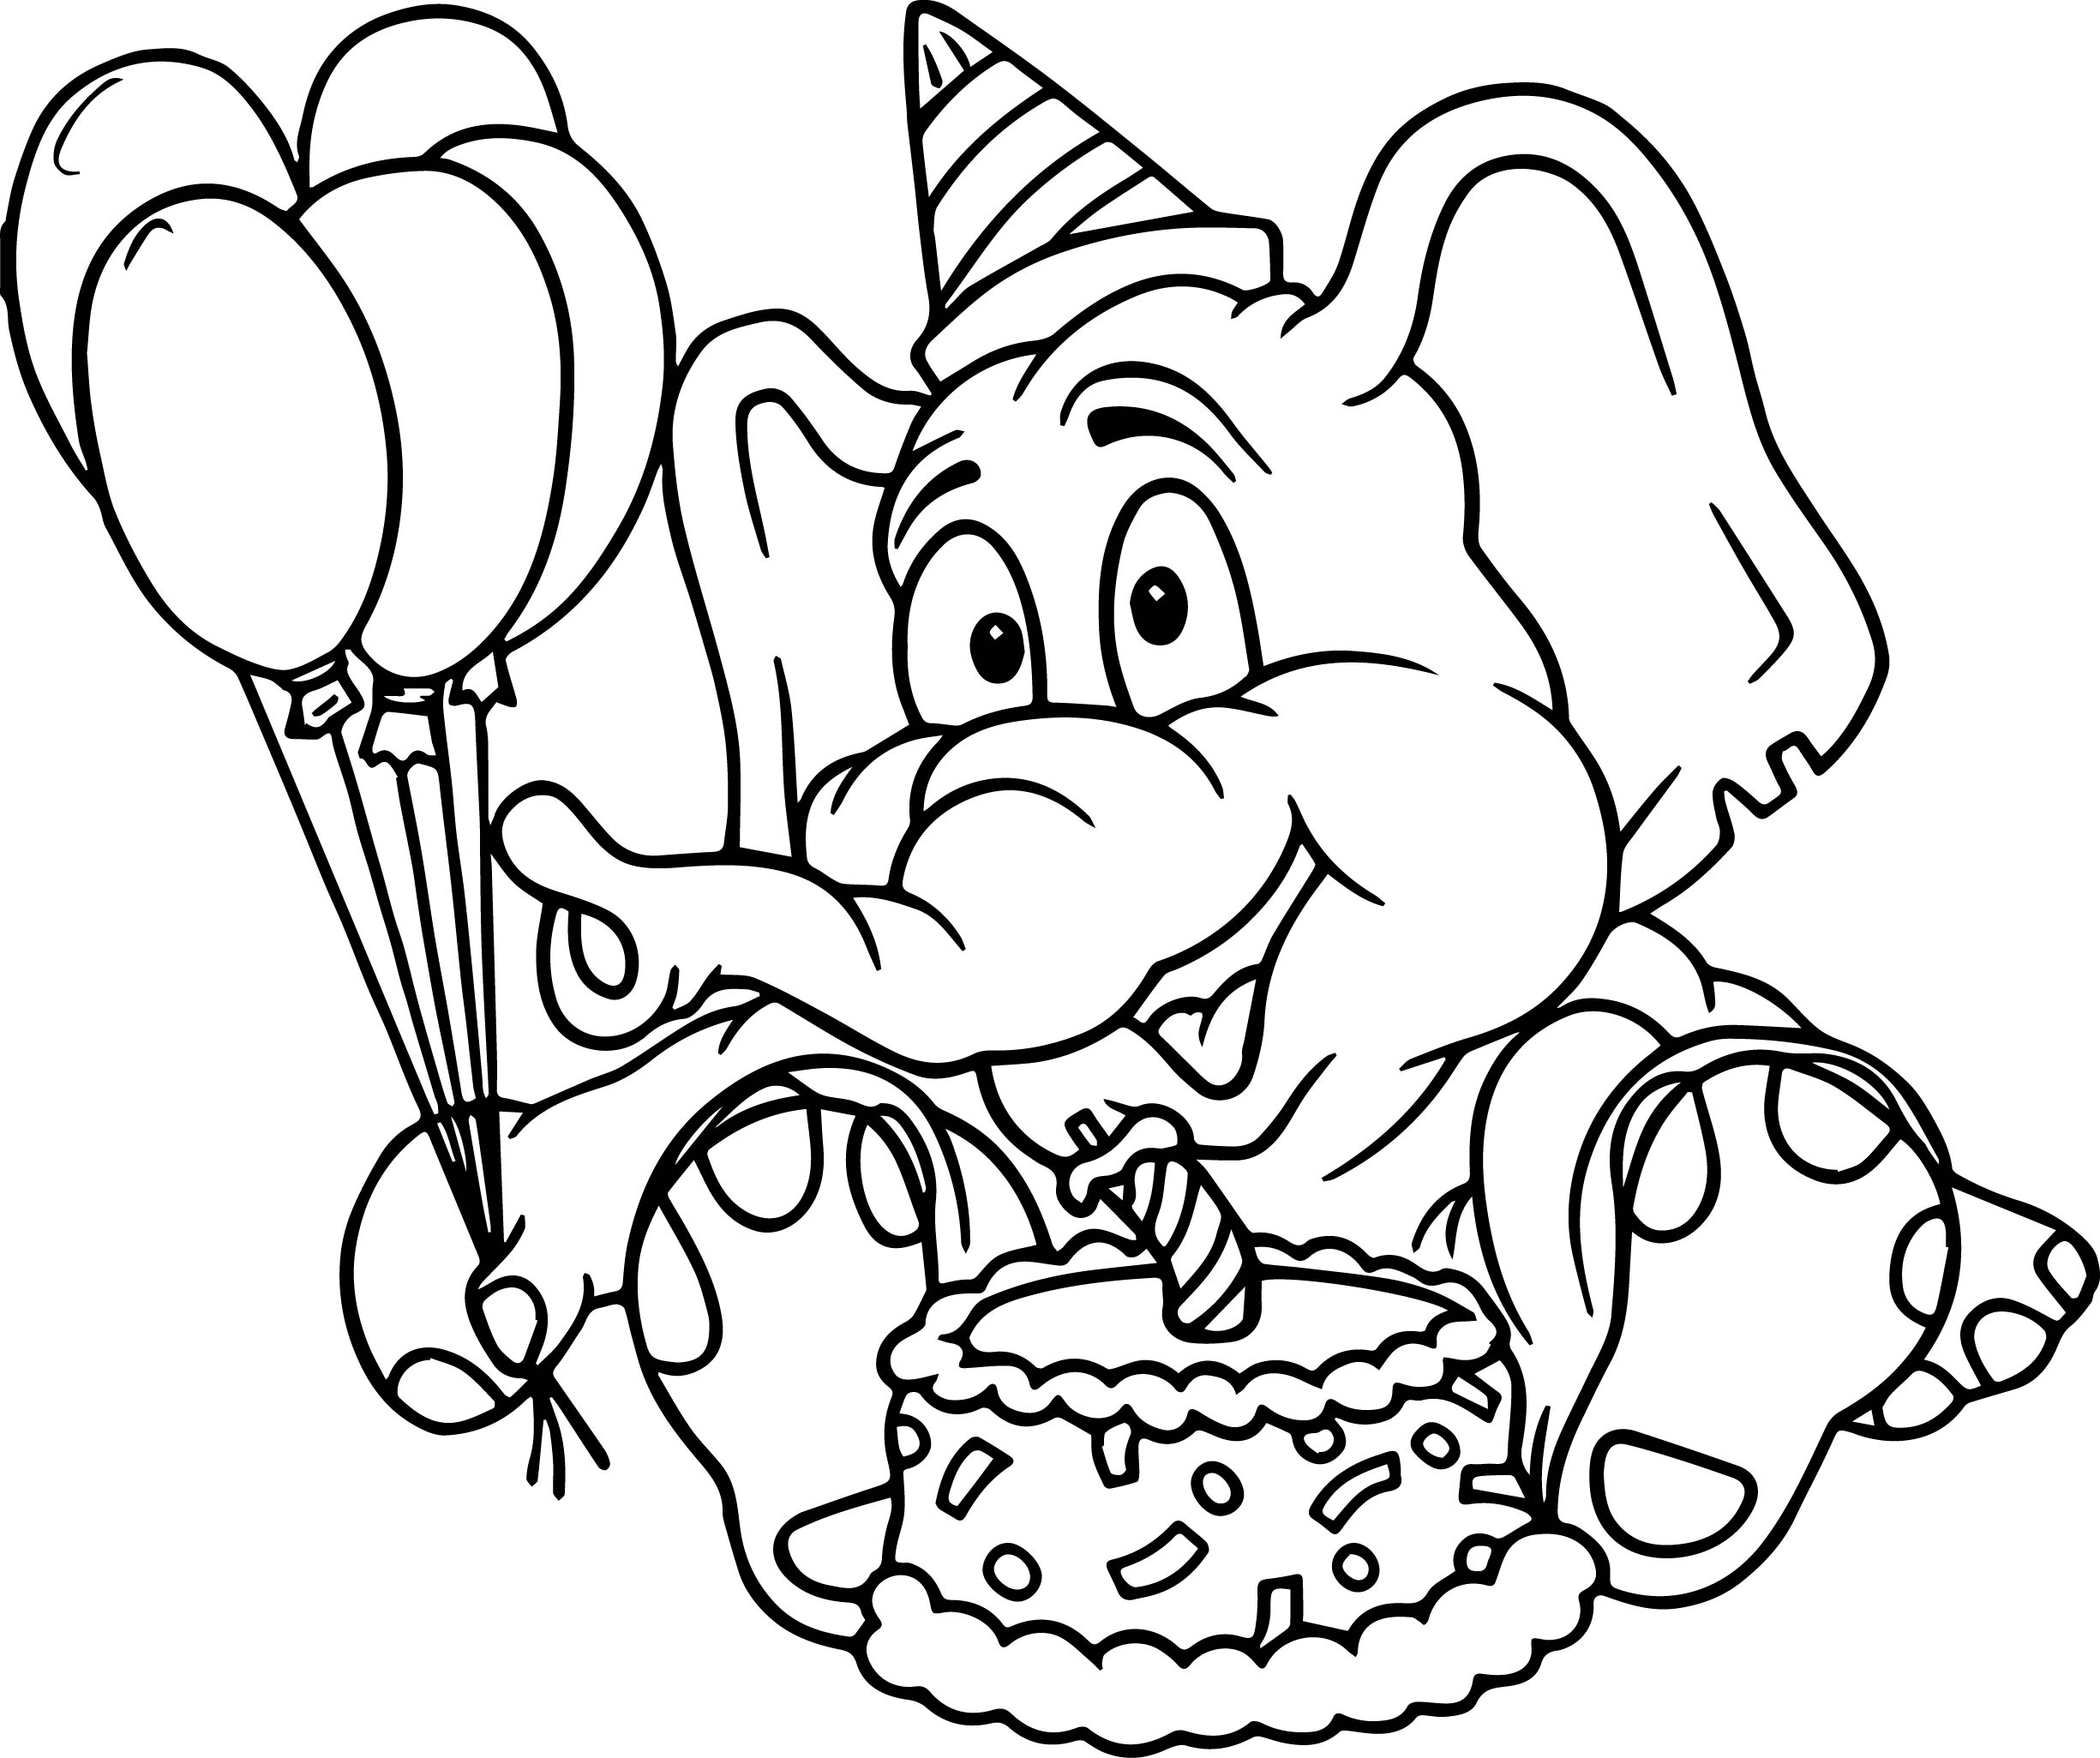 Elephant Party Cake Birthday Coloring Page | Wecoloringpage.com